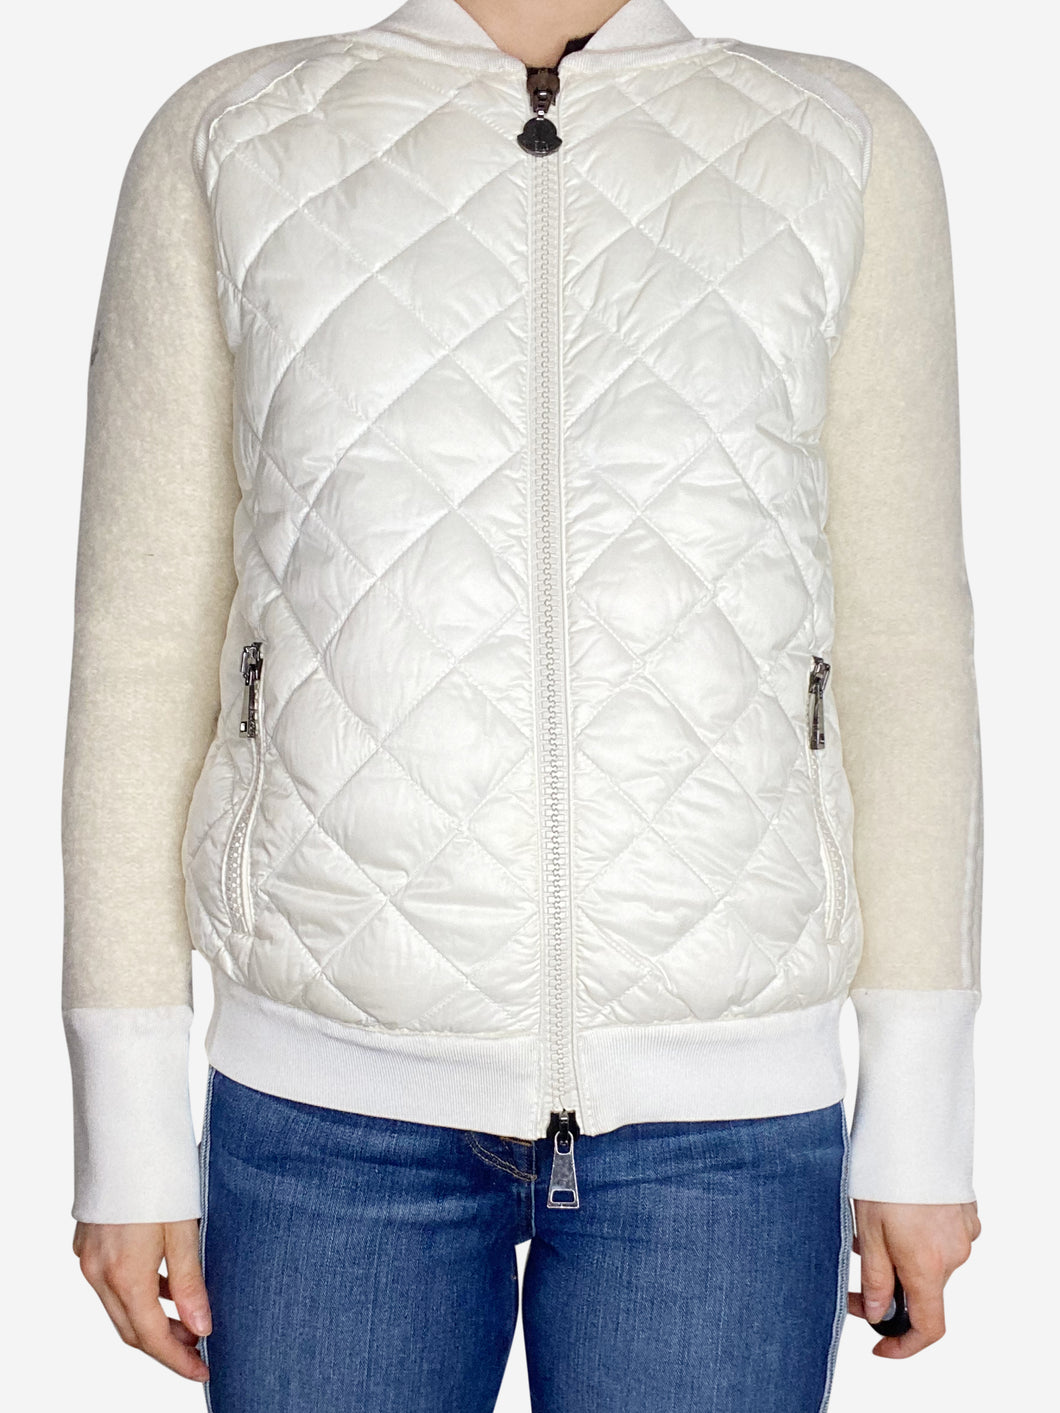 Cream zip up puffer & wool bomber jacket - size M